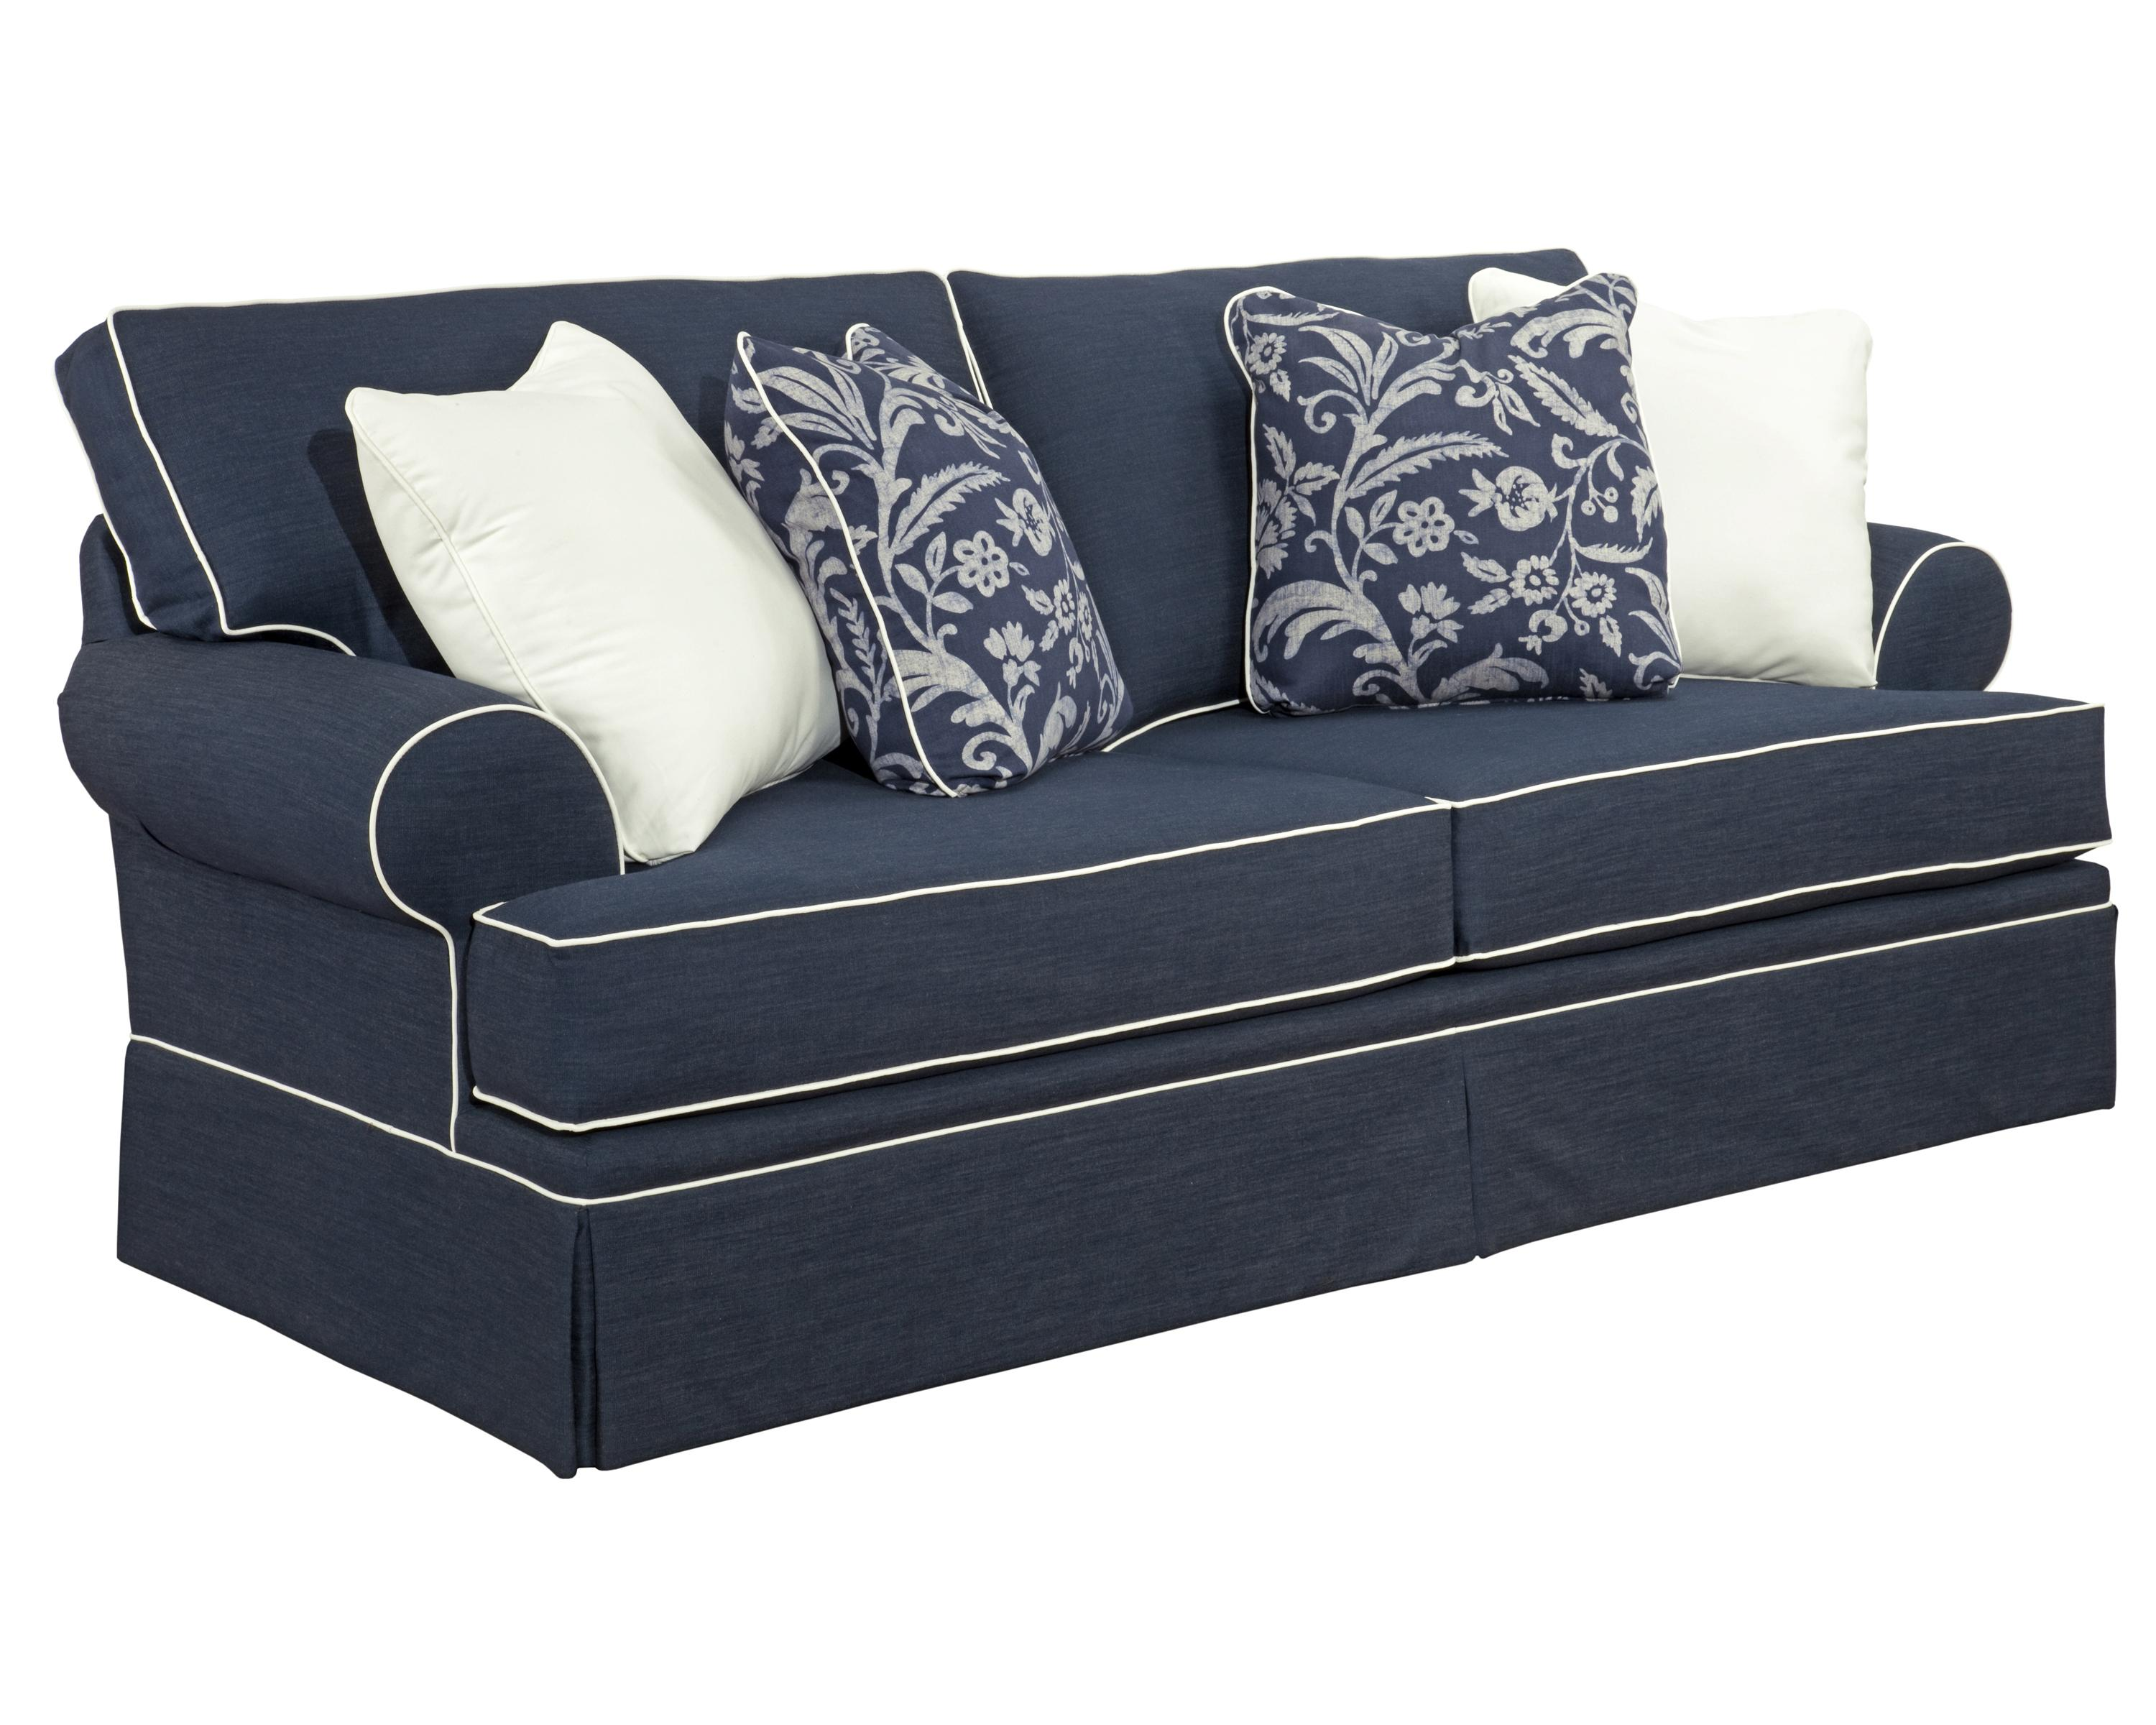 Broyhill Furniture Emily Queen Sleeper - Item Number: 6262-7